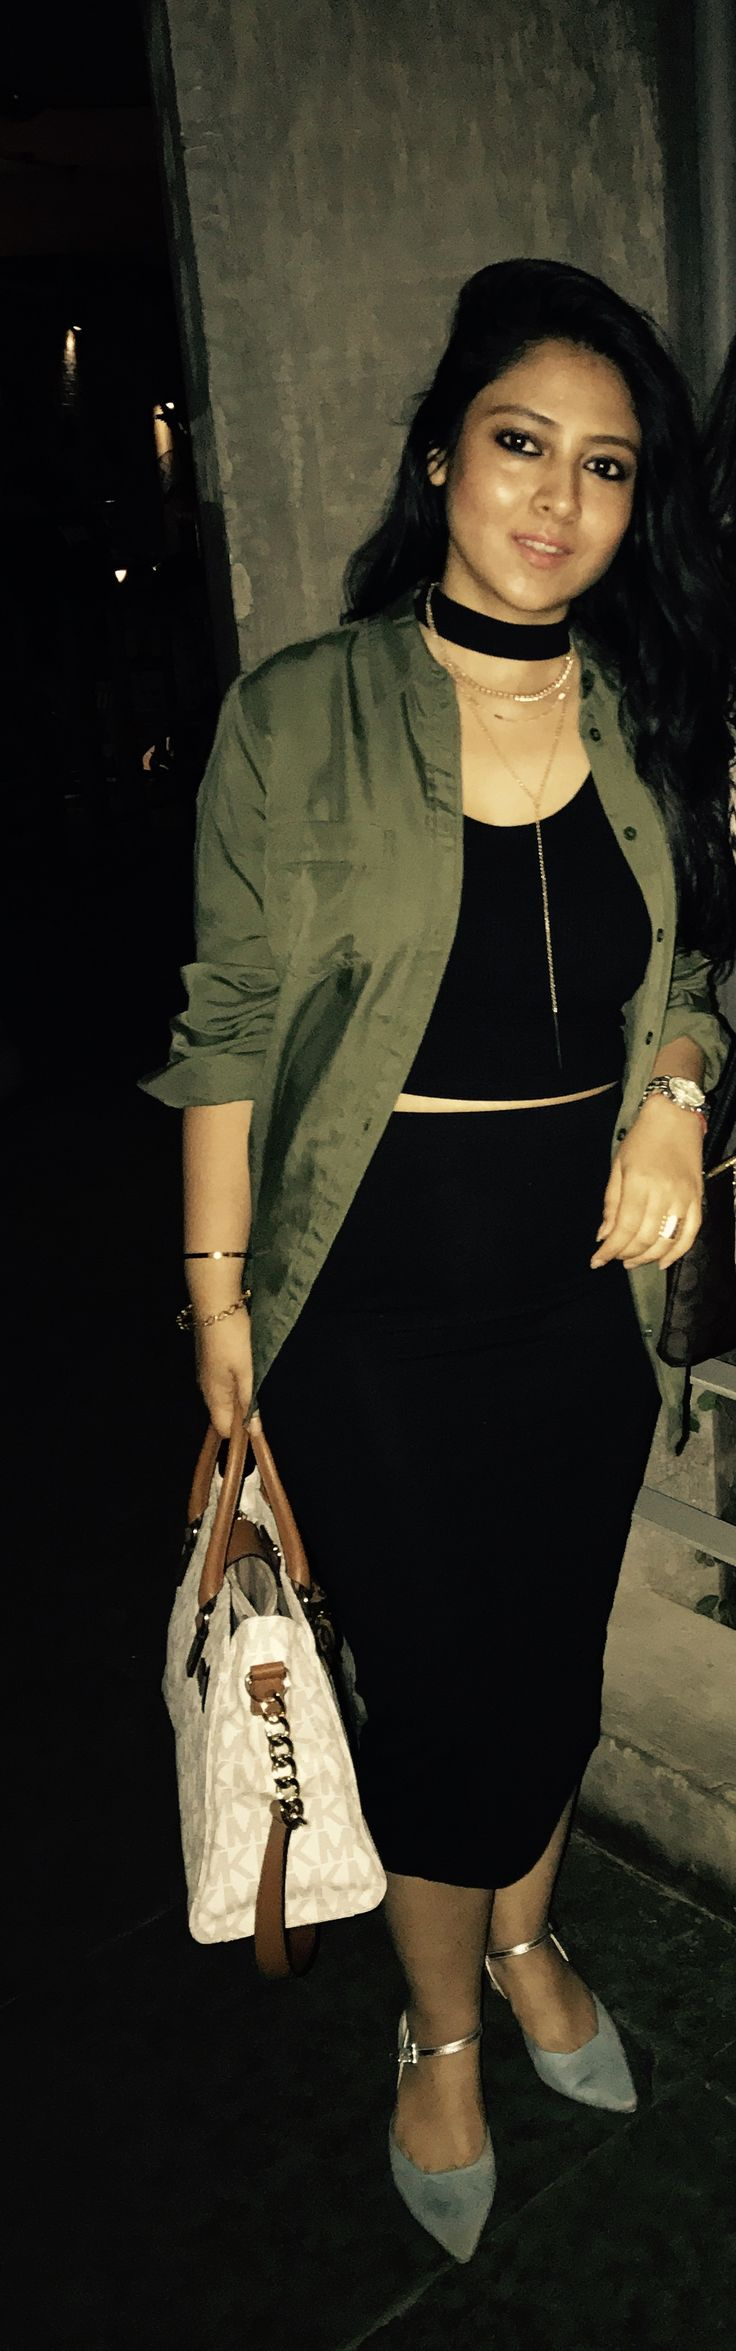 Trending outfits of 2017, green shirt, pencil skirt, chic summer outfits, fashion for healthy women, outfits for short girls, fashion for pear shaped women, choker top, latest clothes in fashion, crop tops, hide your fat, outer wear to cover your flaws, Kim kardashian fashion styling, kitten heels, how to look slim in clothes, latest trends this summer